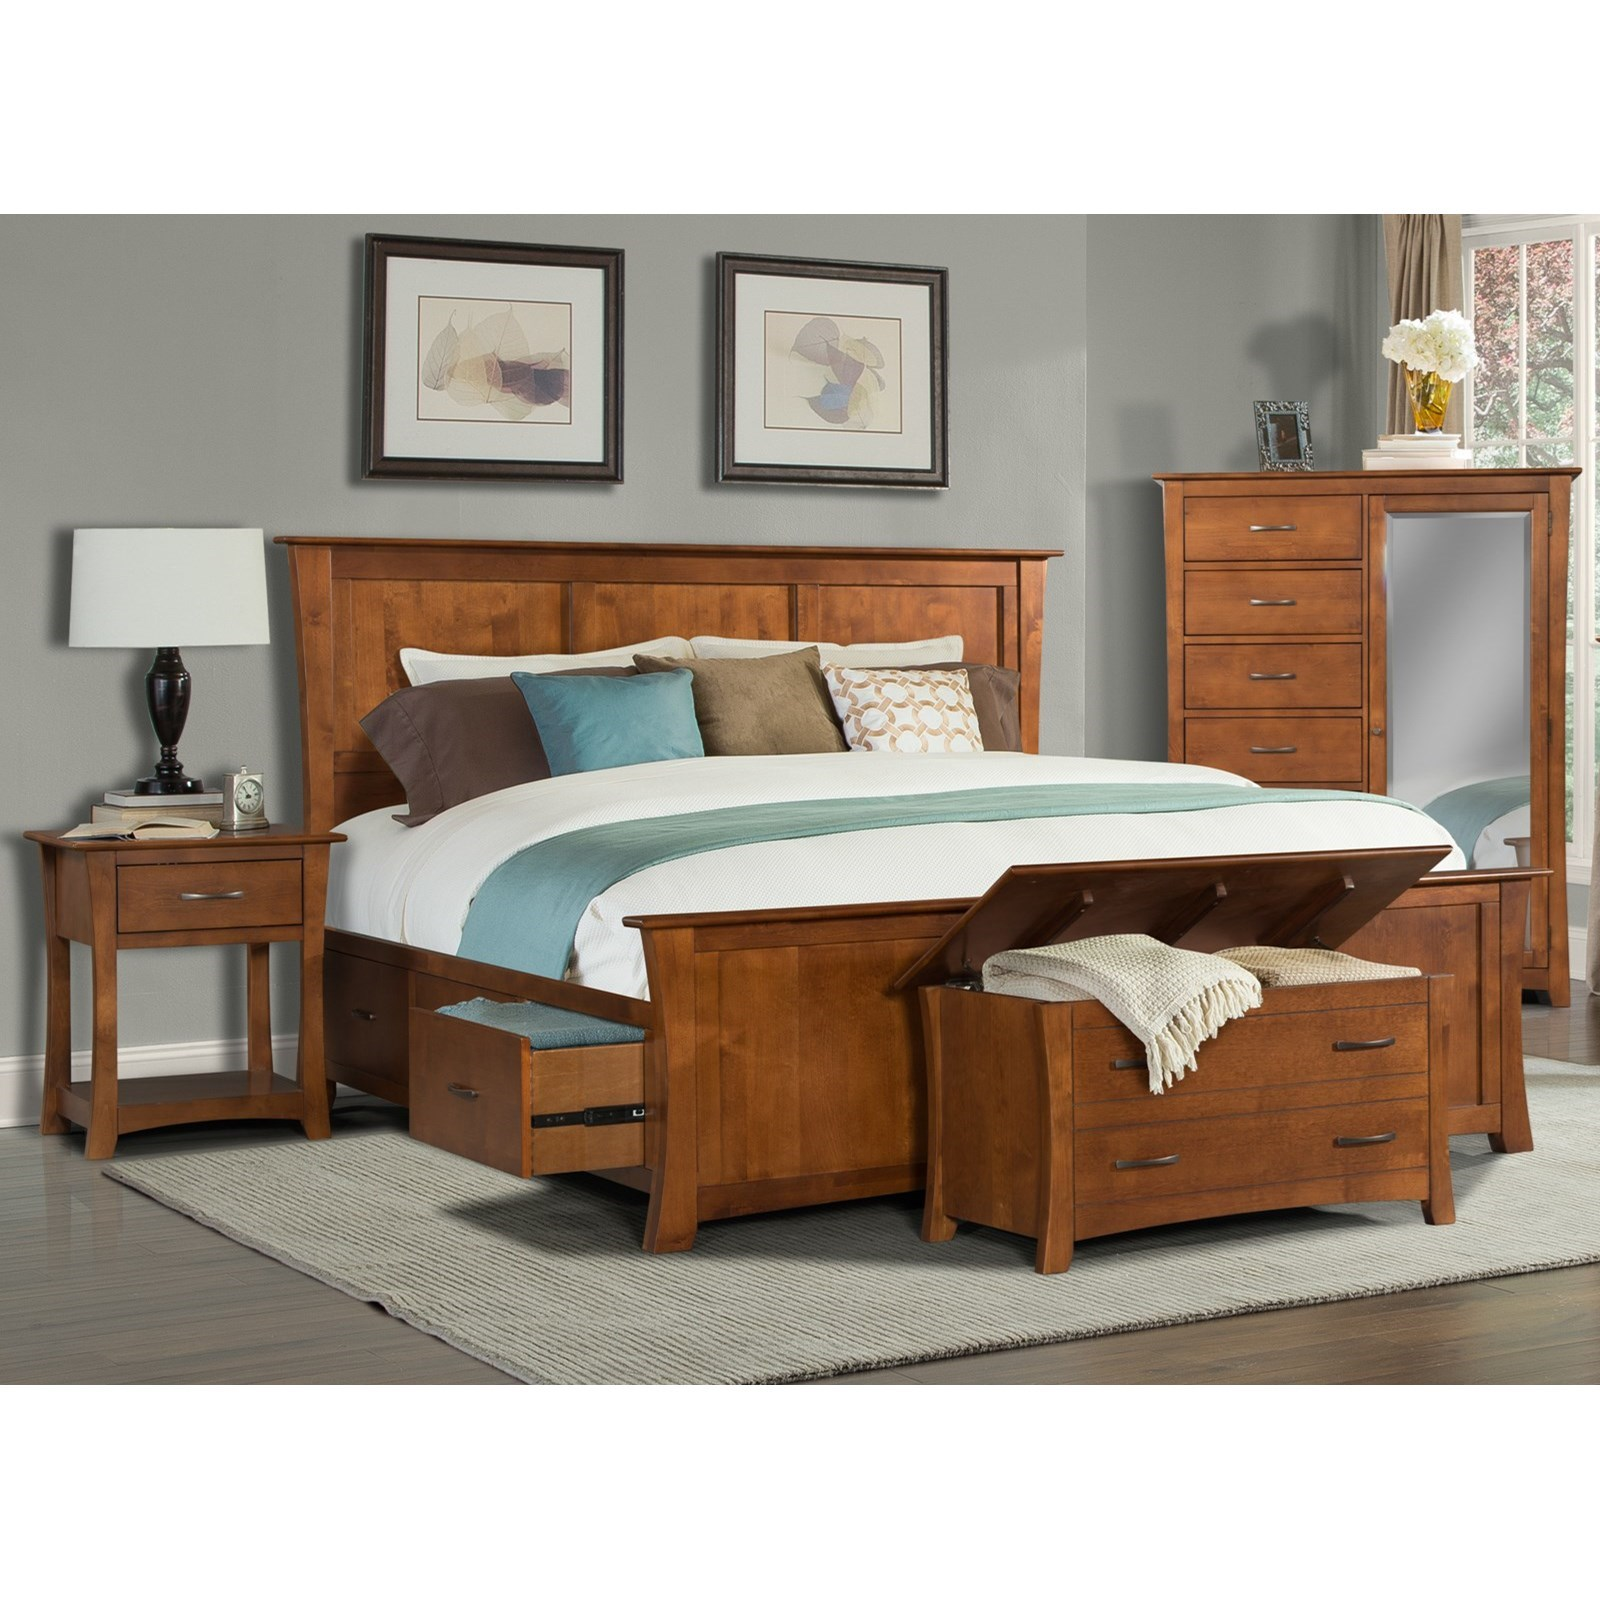 Grant Park King Platform Storage Bed by A-A at Walker's Furniture